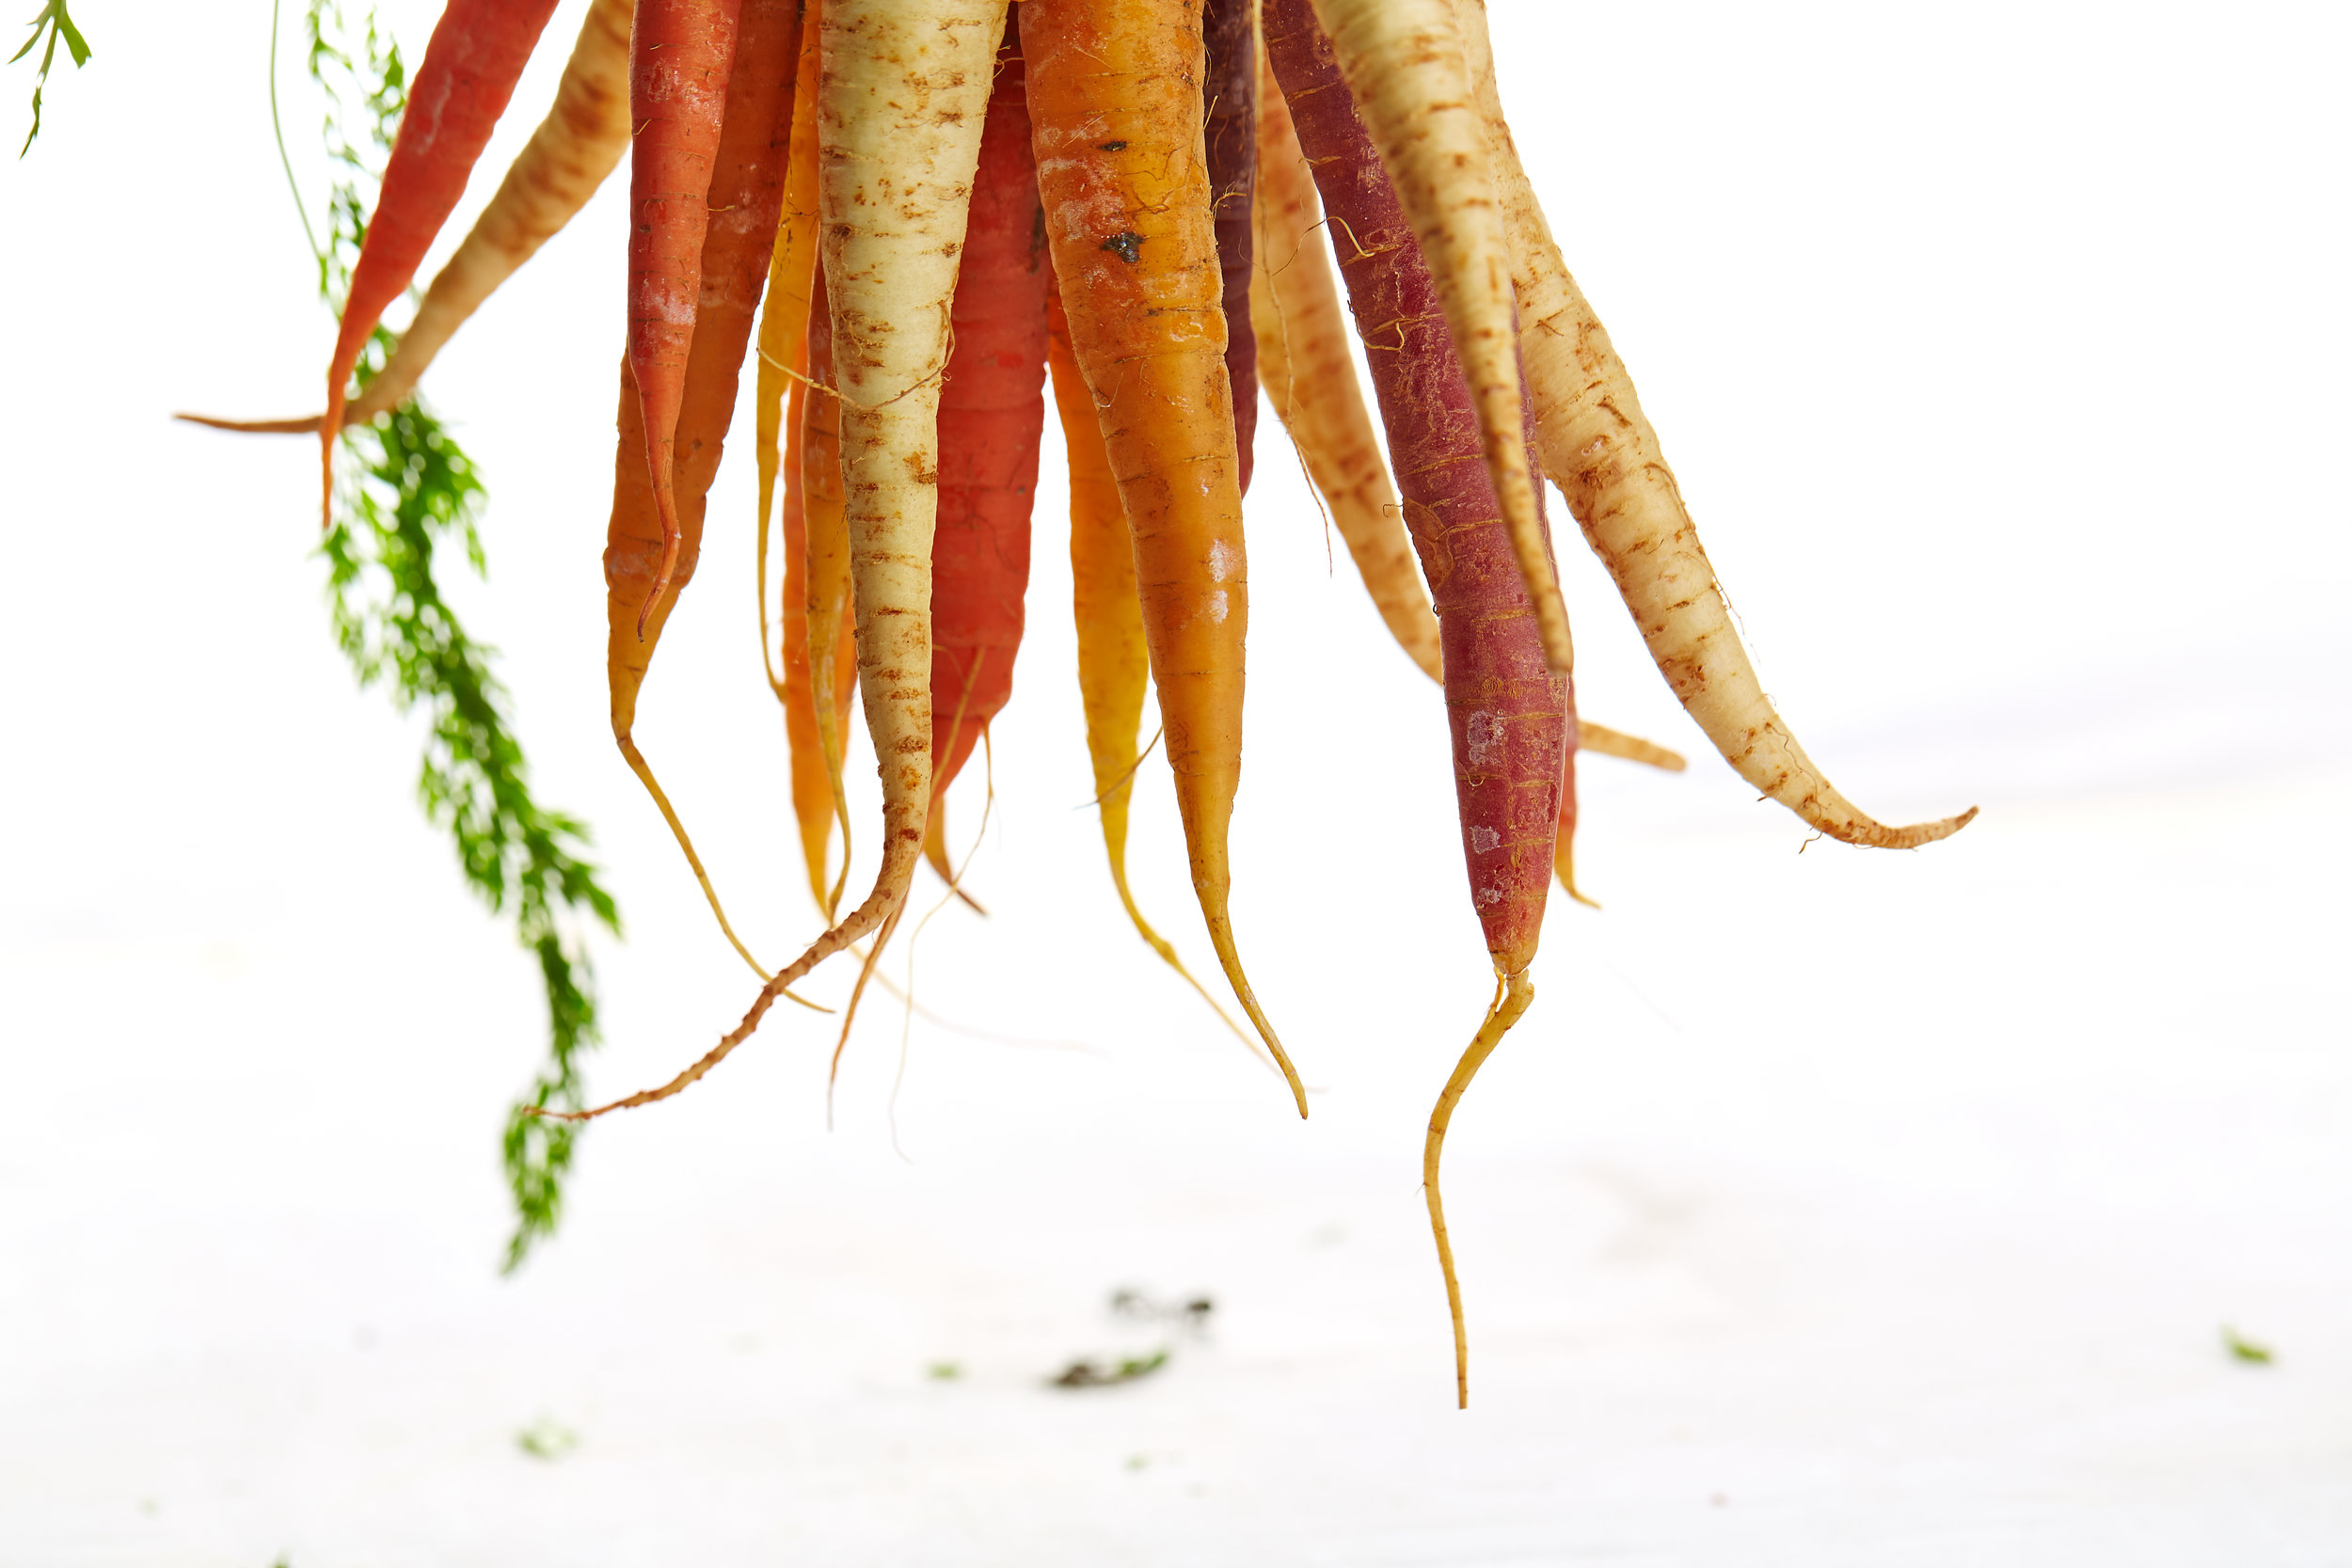 Carrots & Caraway - Carrots and caraway belong to the same plant family.